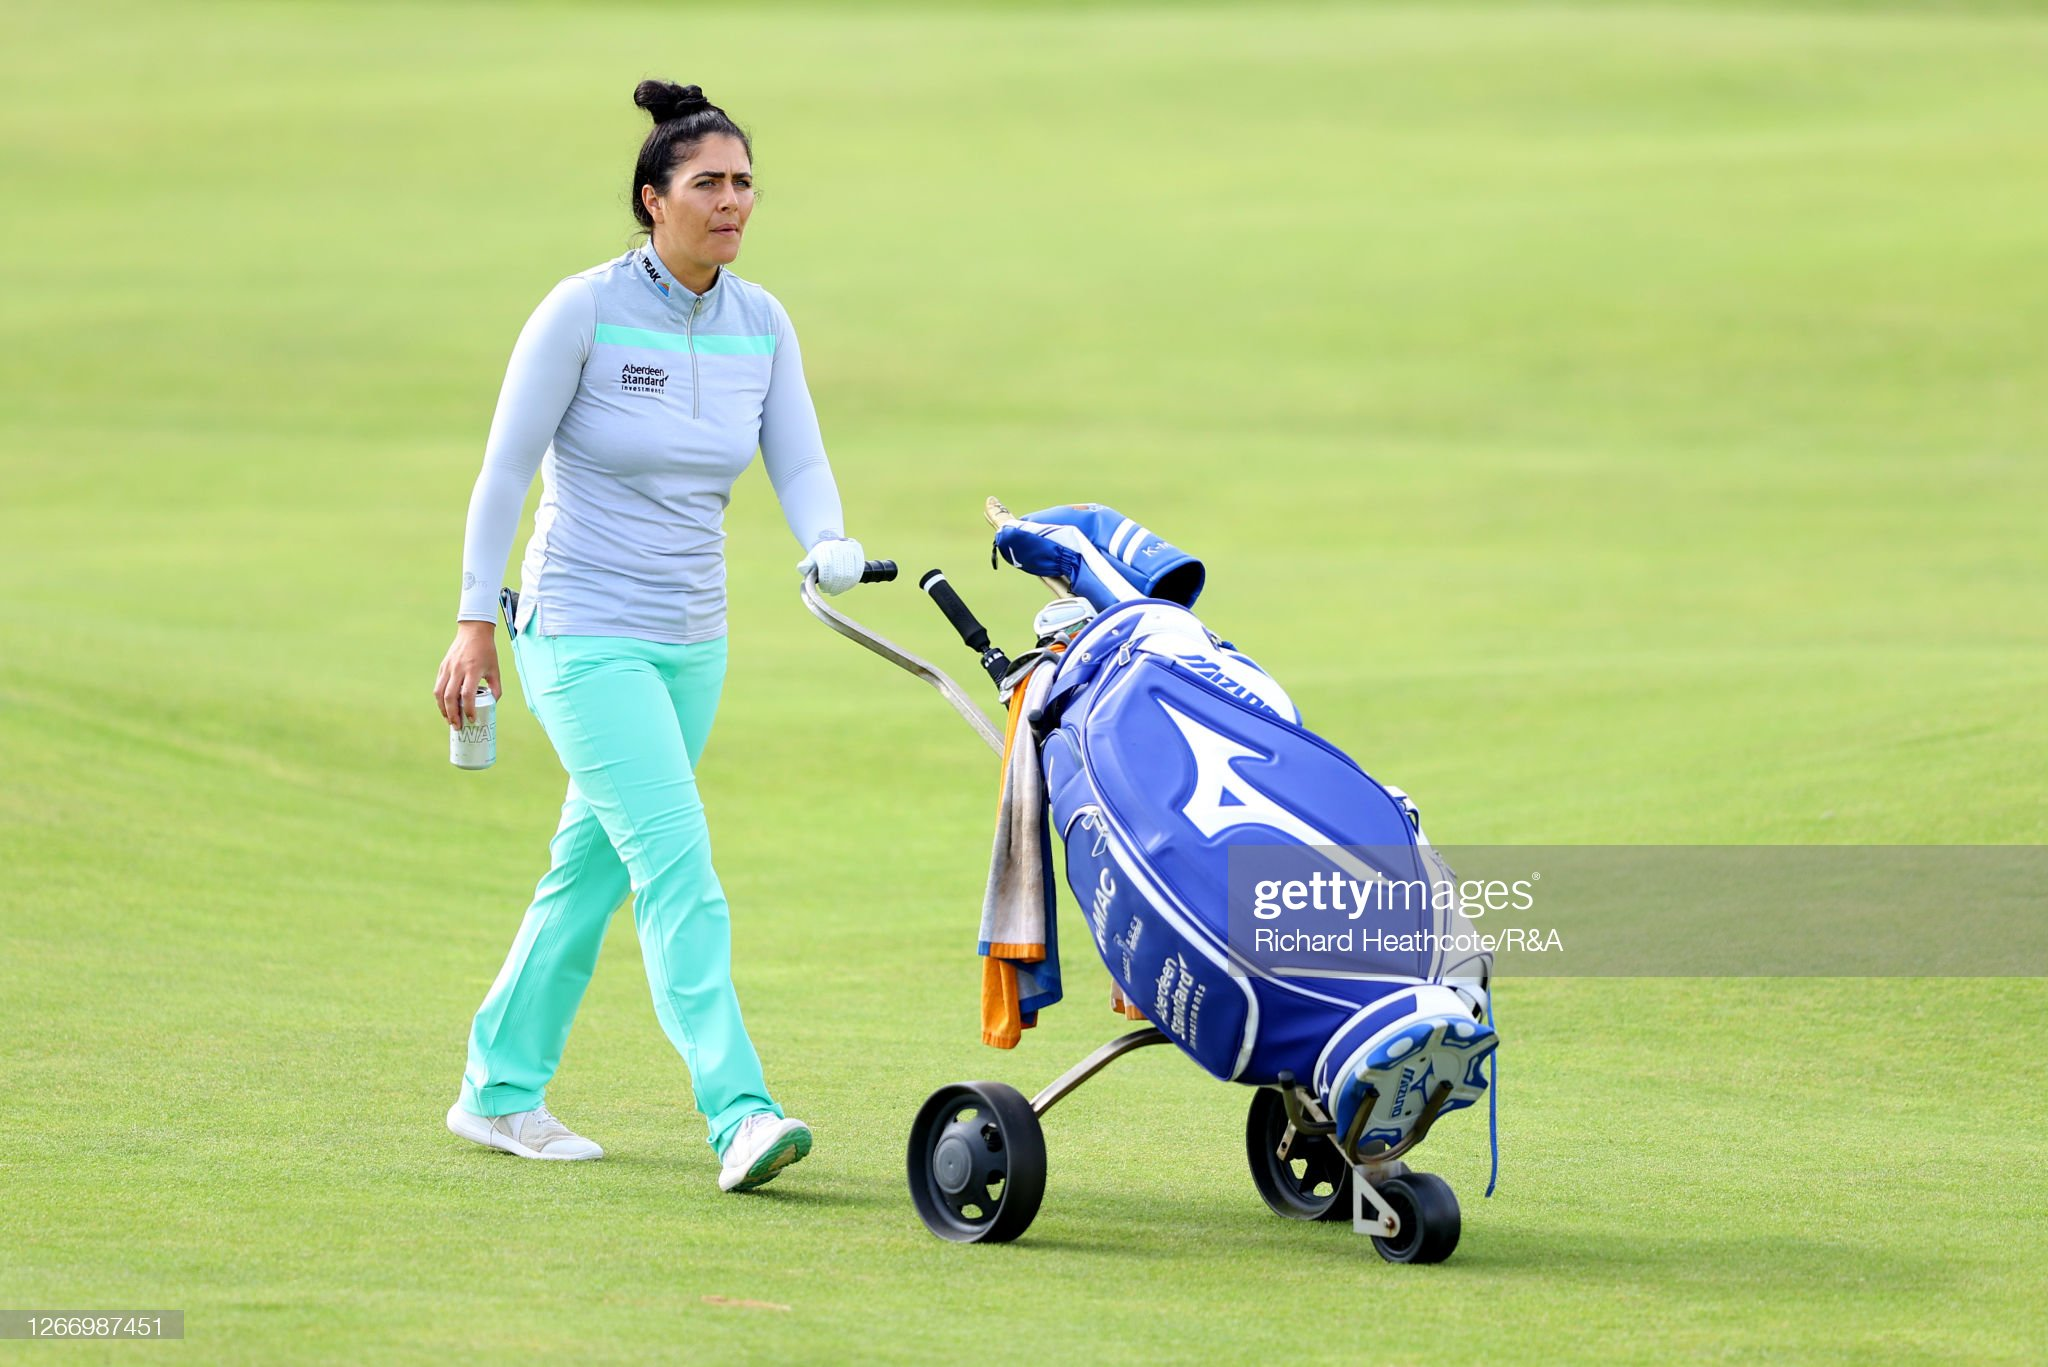 https://media.gettyimages.com/photos/kelsey-macdonald-of-scotland-is-seen-during-a-practice-round-ahead-of-picture-id1266987451?s=2048x2048